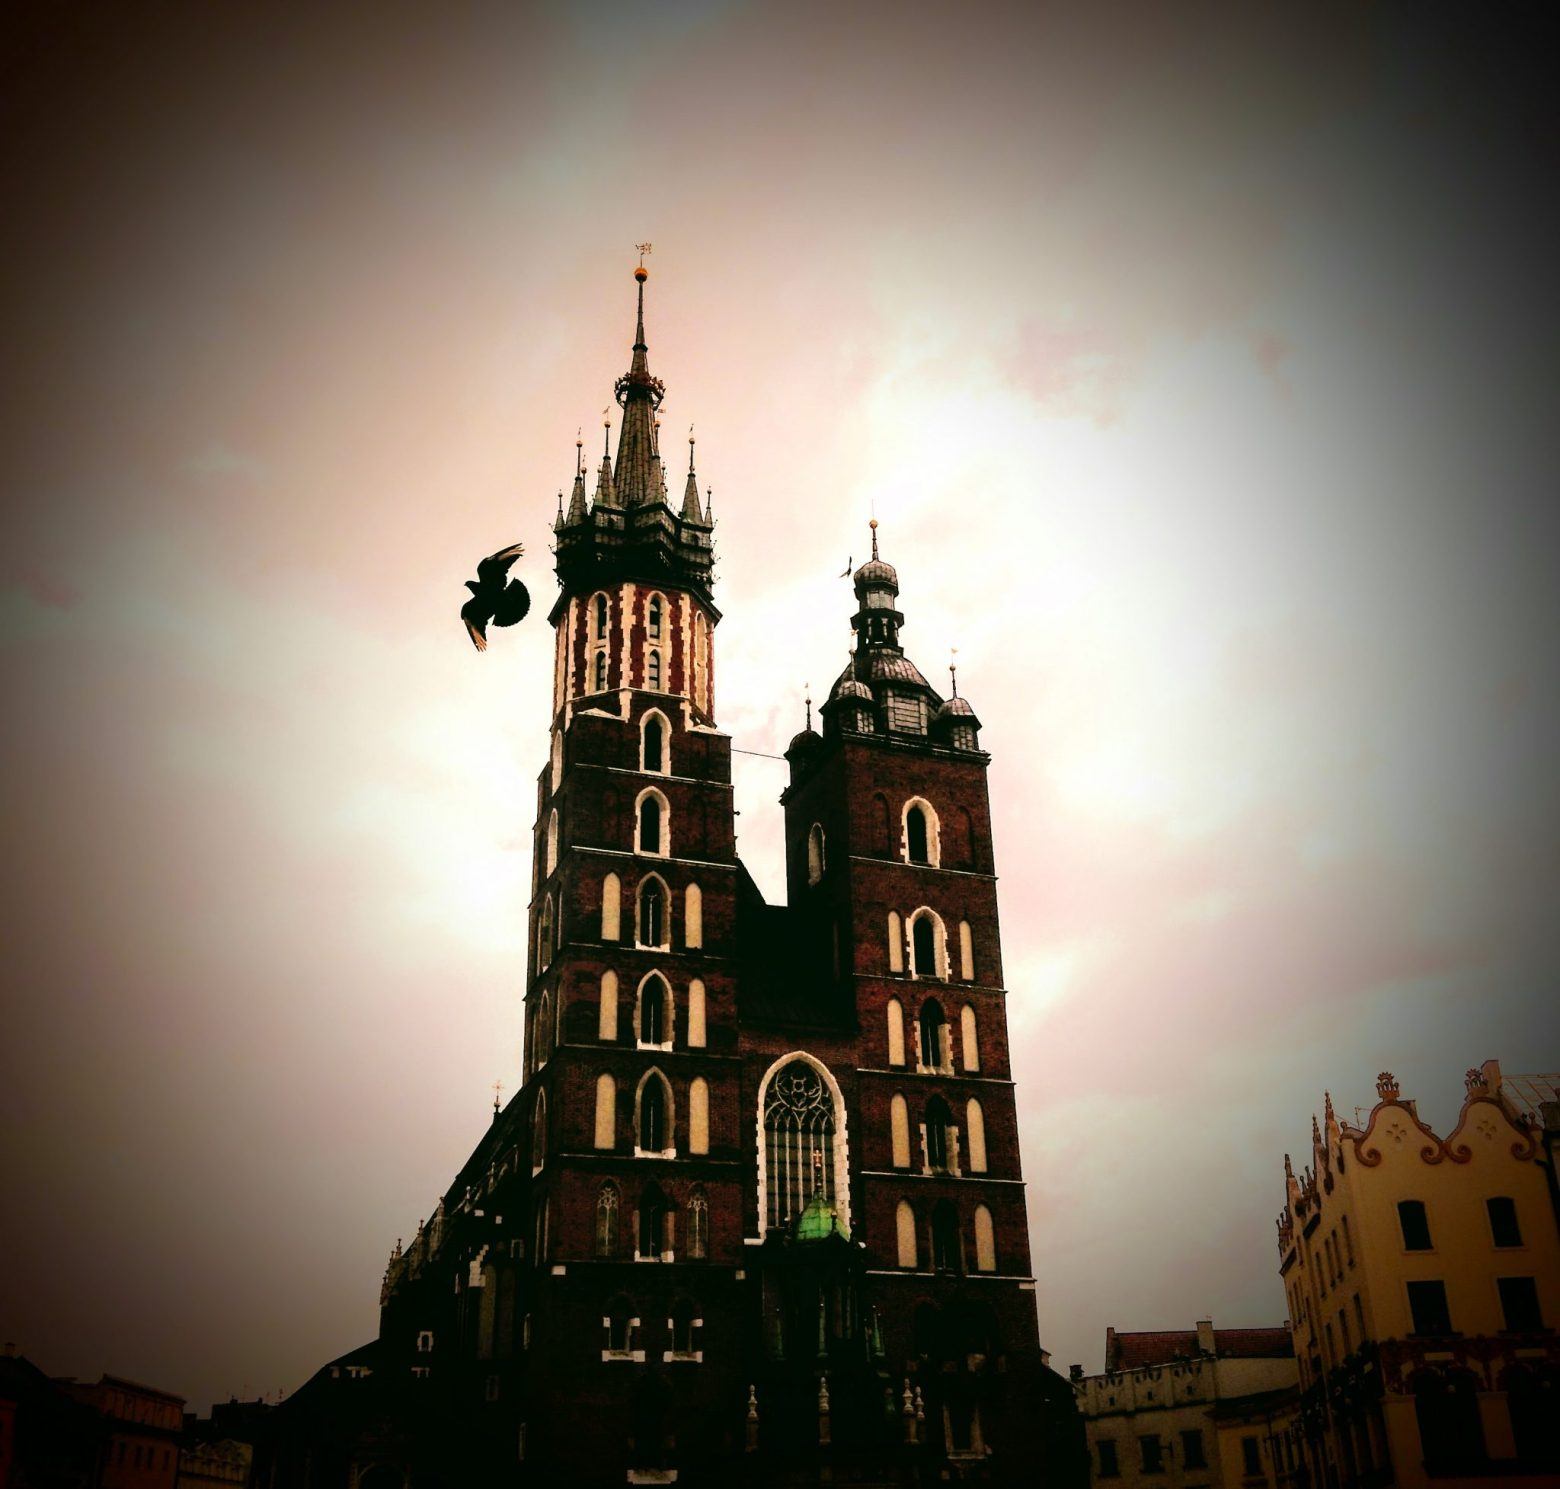 Krakow: The old capital of Poland